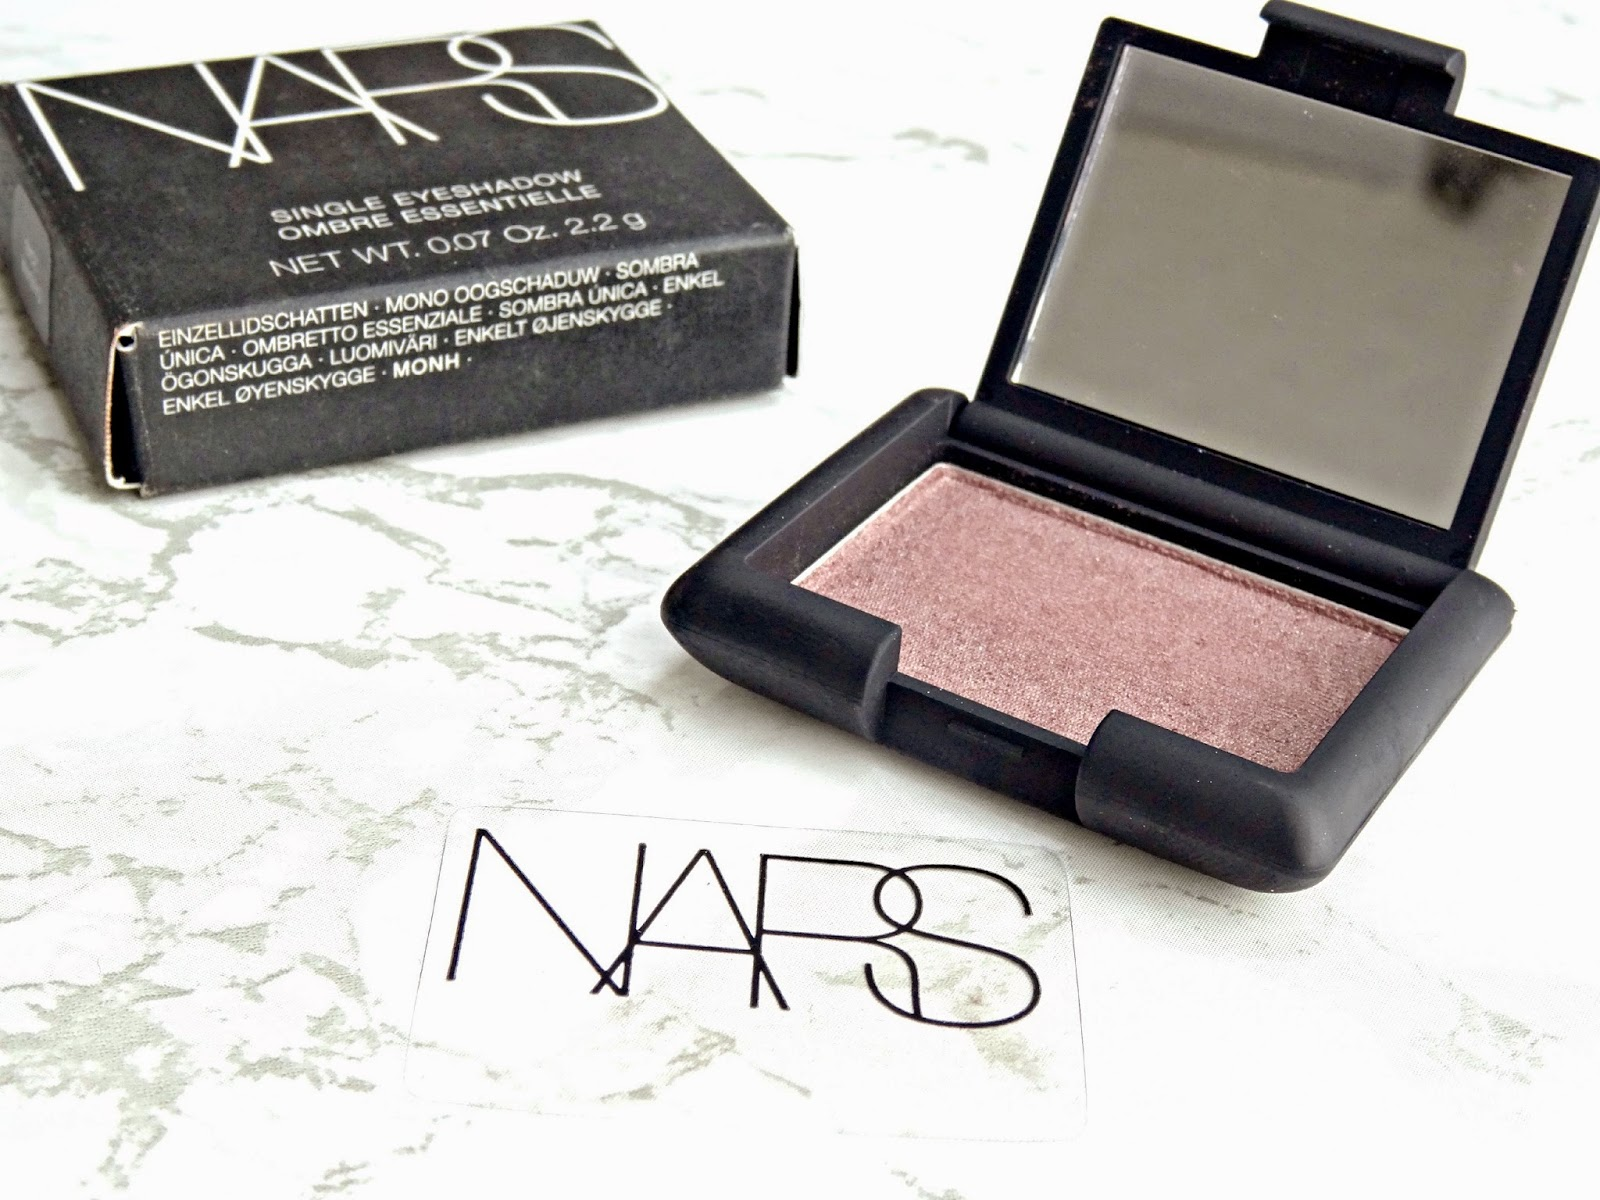 The Review: NARS Ondine Eyeshadow